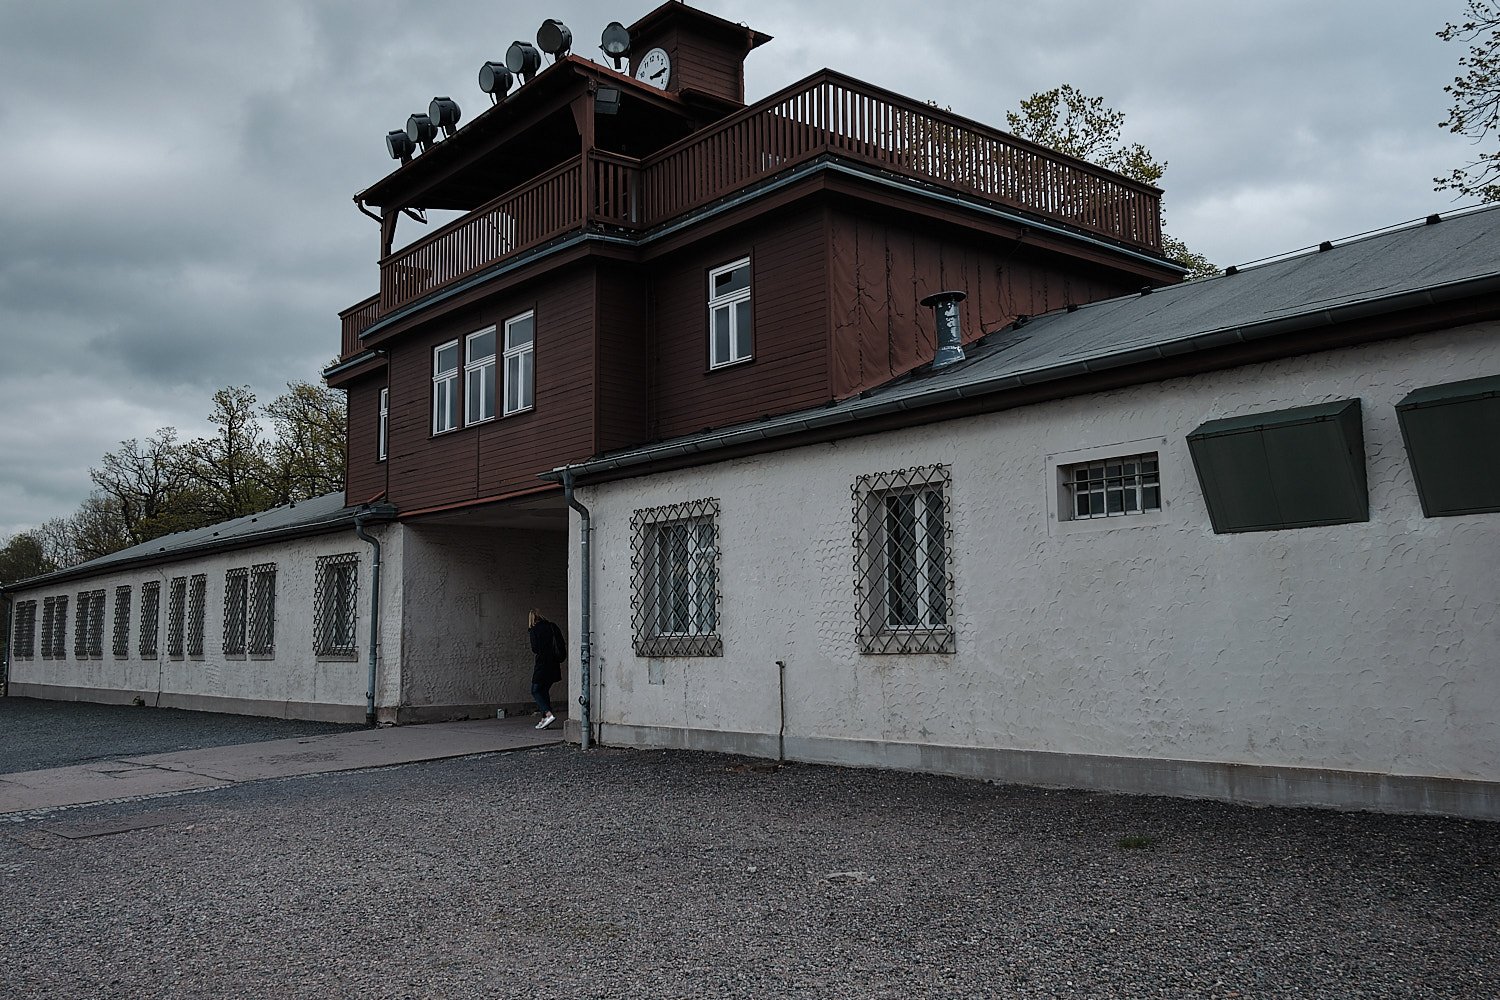 Entrance building with arrest cells in the Memorial Site of the KZ-Buchenwald, Weimar, Germany